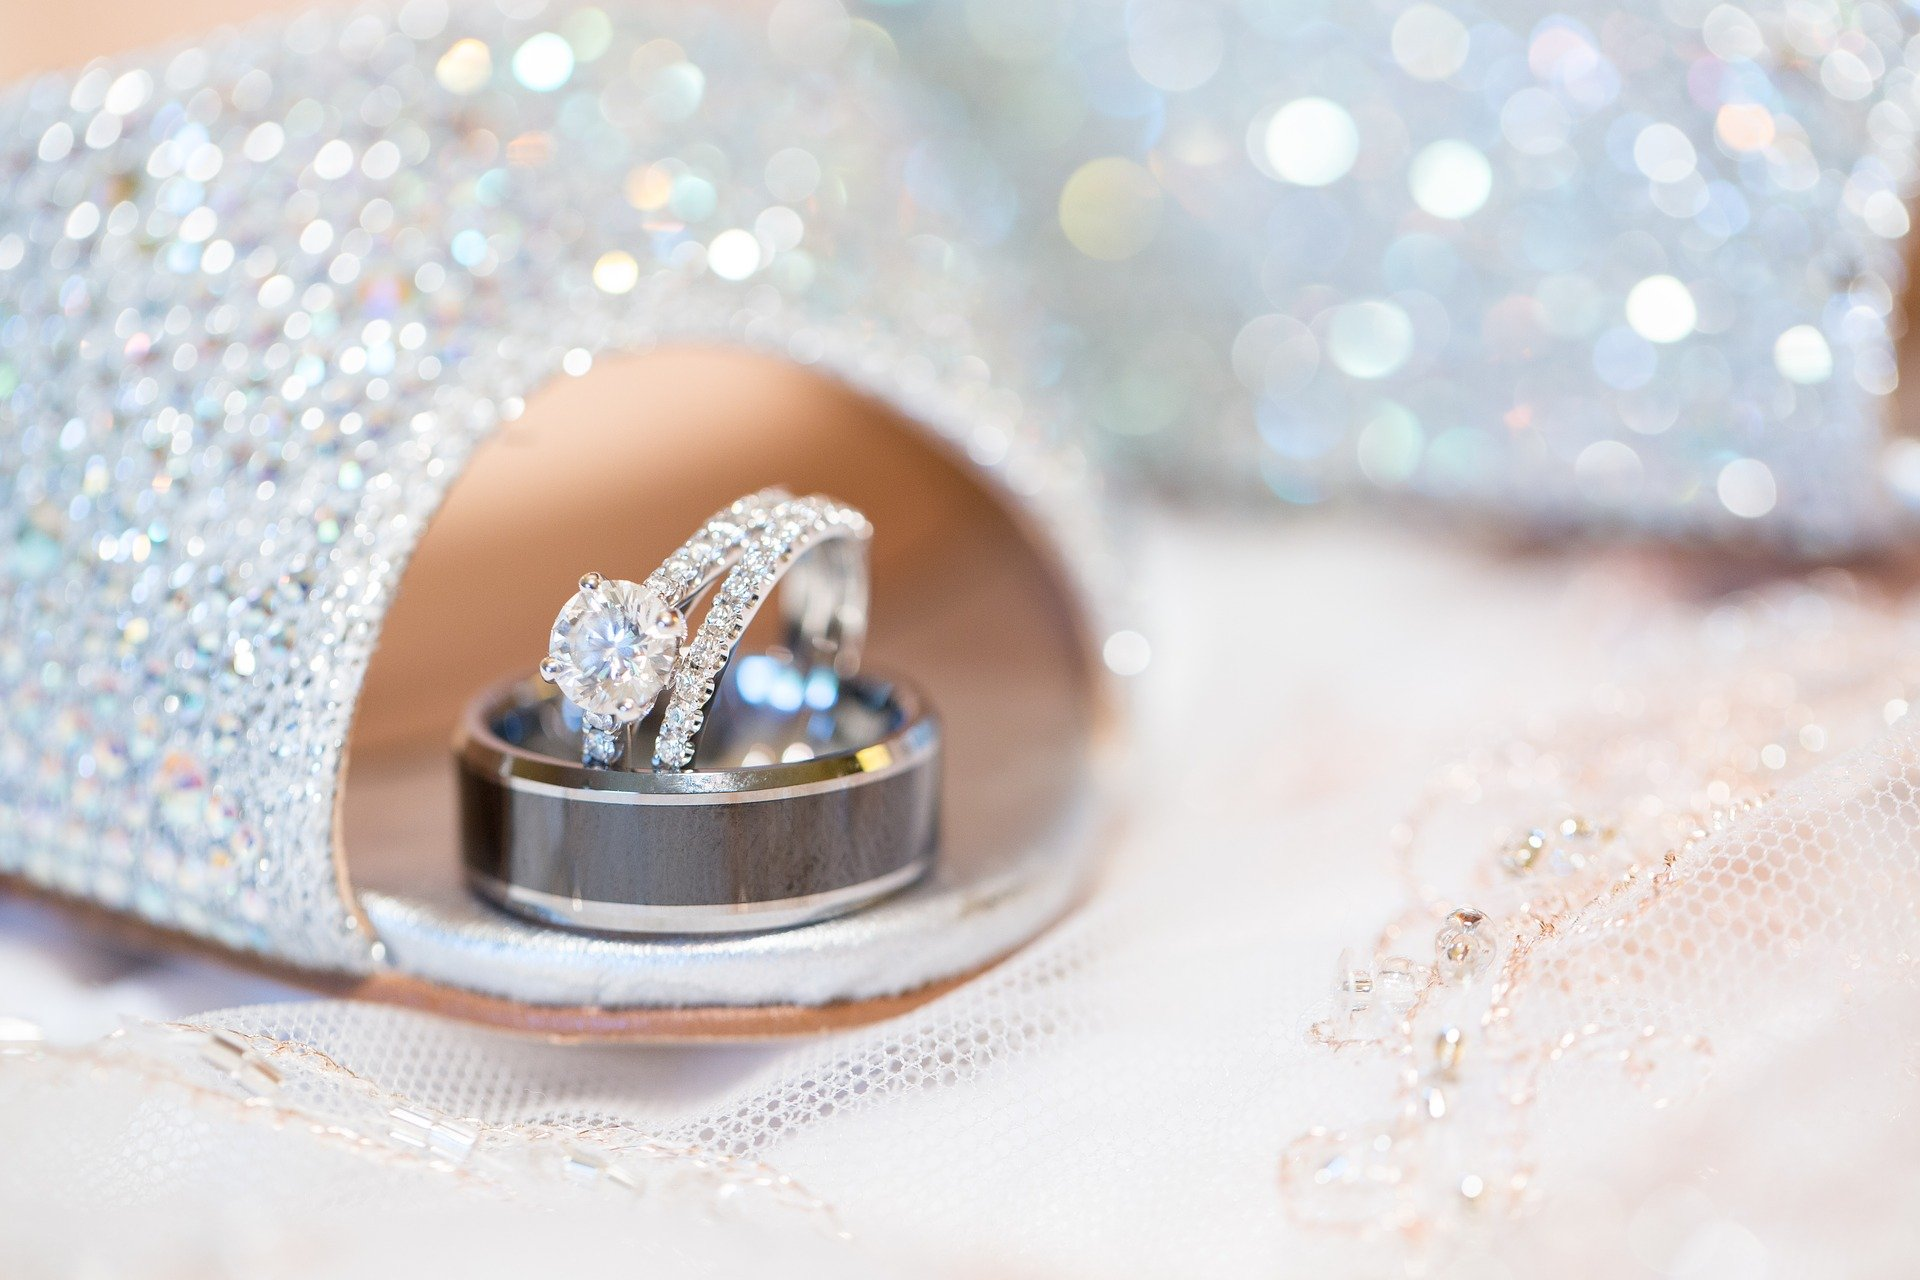 sparkling diamond encrusted wedding ring and band in bride's shoe